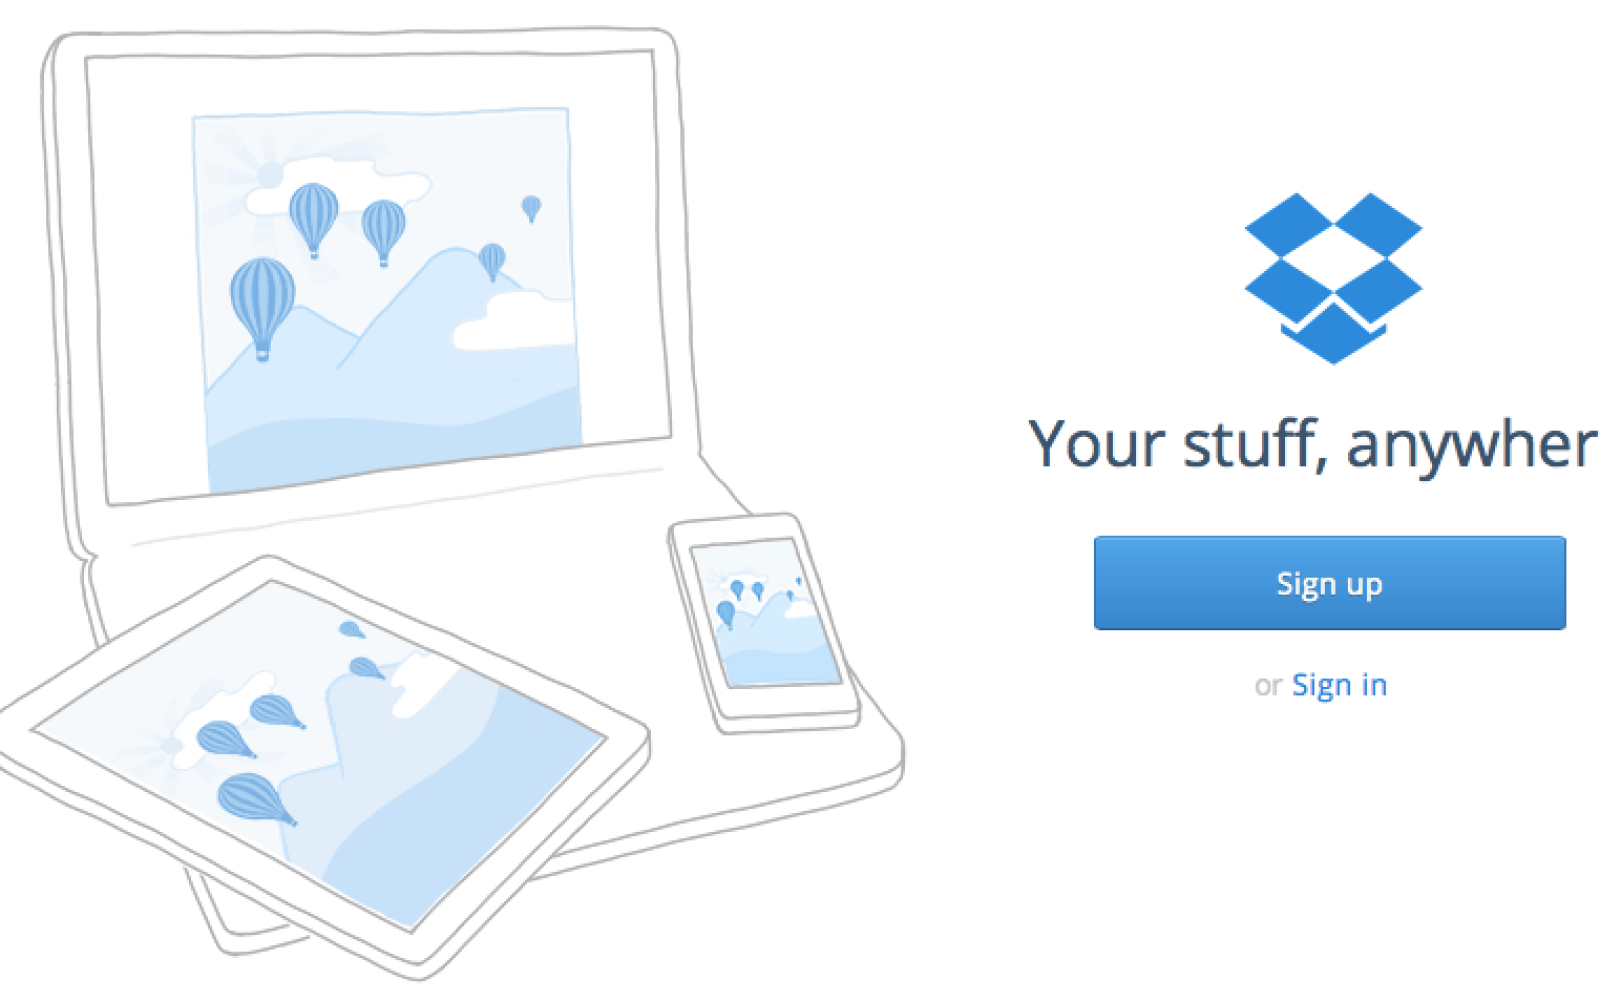 Get an extra 1GB of Dropbox space for free